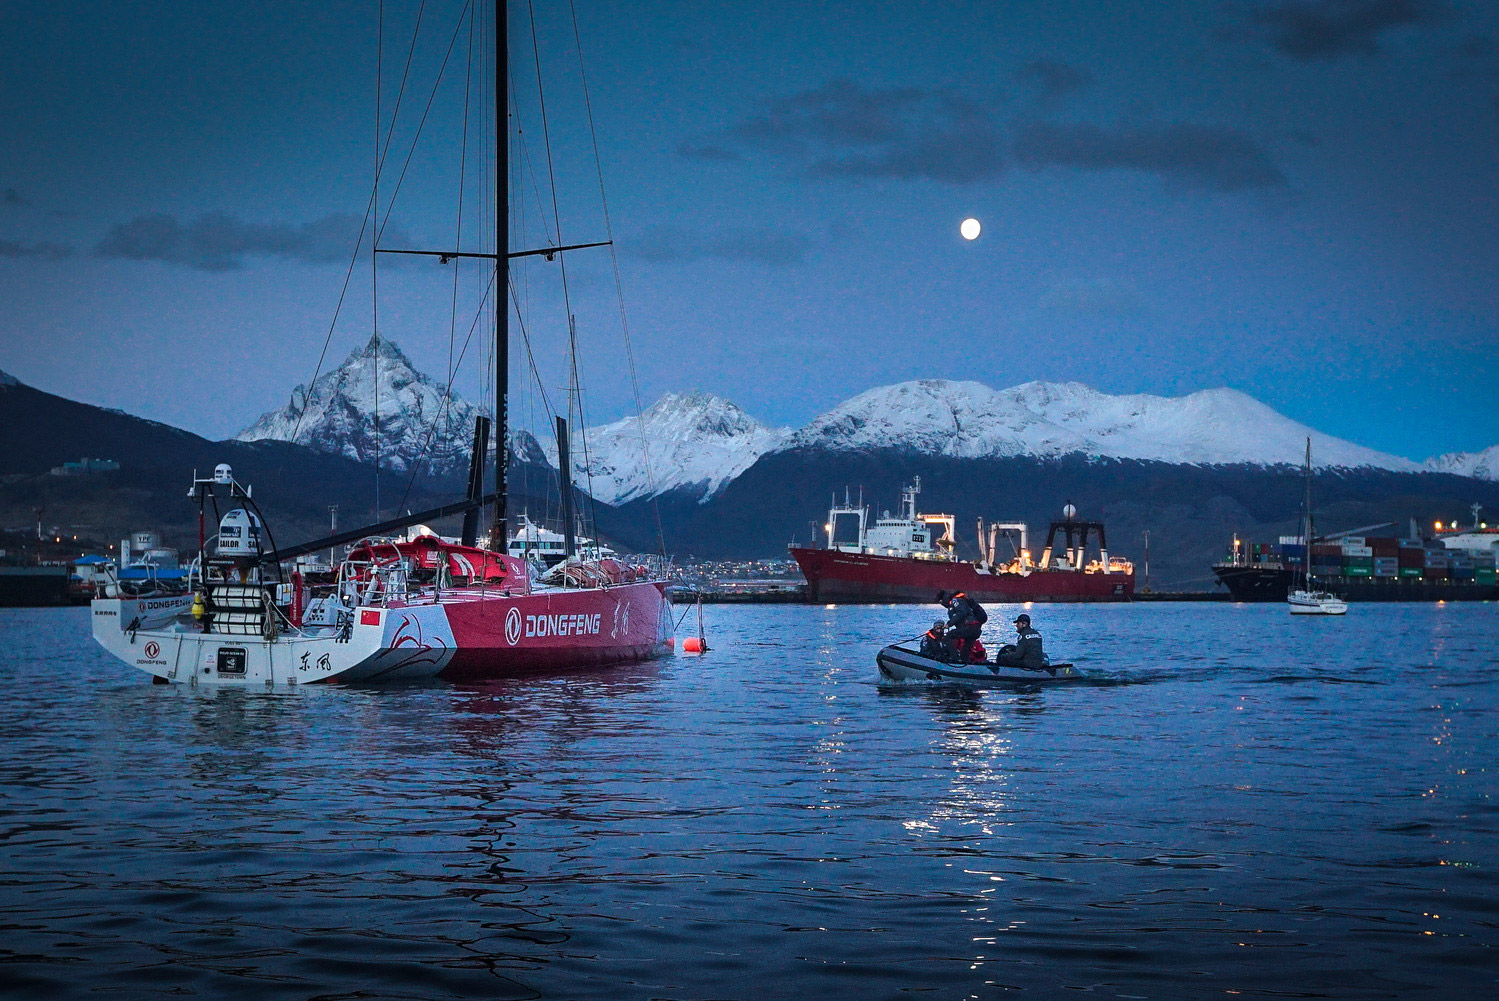 Dongfeng dismasted in the Southern Ocean during the 2014-15 Volvo Ocean Race. Repair mast in Ushuaia.